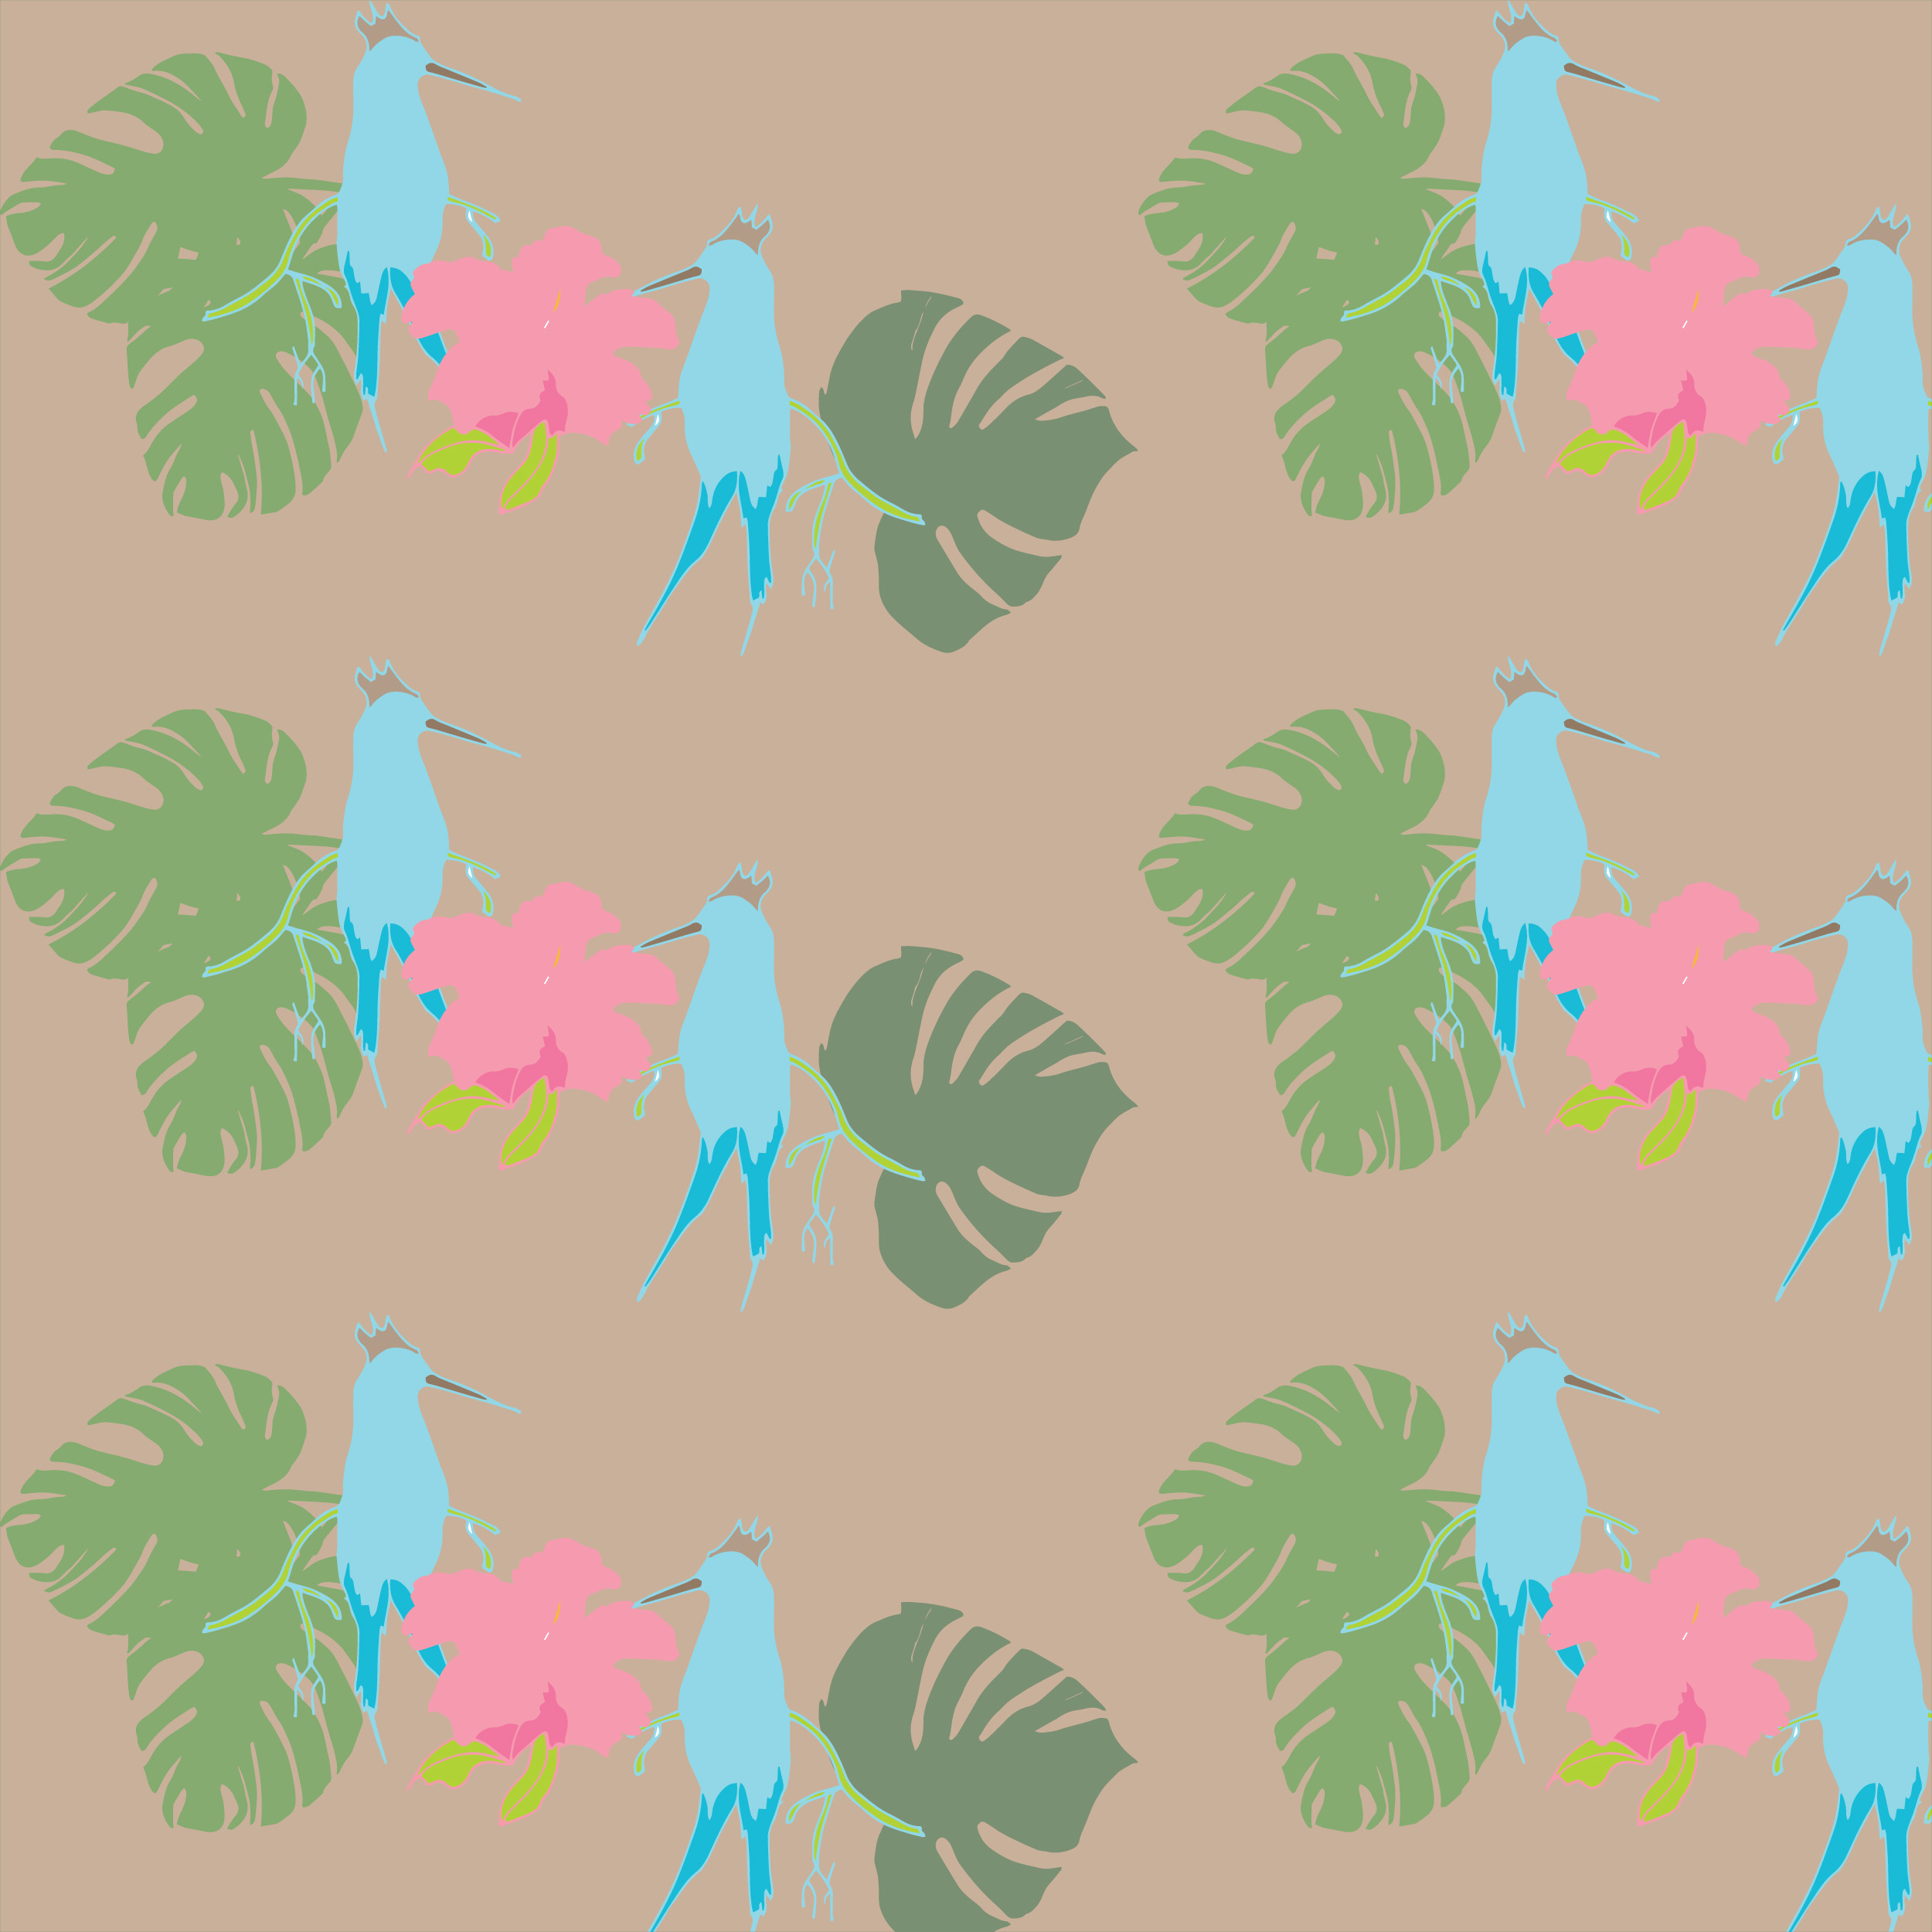 Fantasy Patterns with Birds example image 4